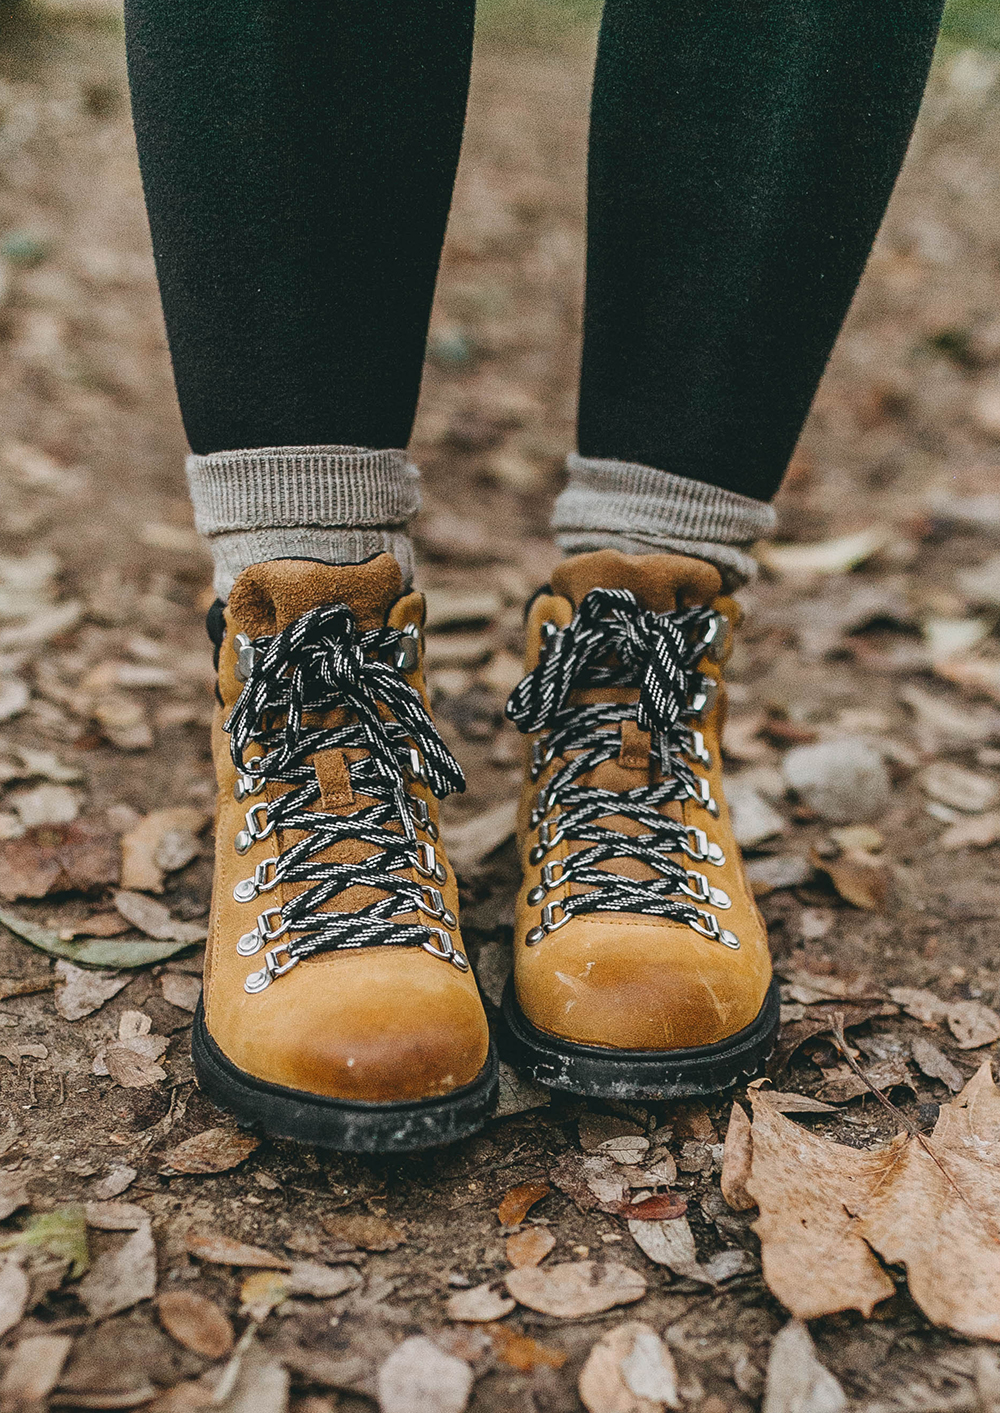 livvyland-blog-olivia-watson-austin-texas-fashion-lifestyle-blogger-greenbelt-fall-patagonia-radalie-parka-sorel-ainsley-boots-hiking-outfit-backcountry-10